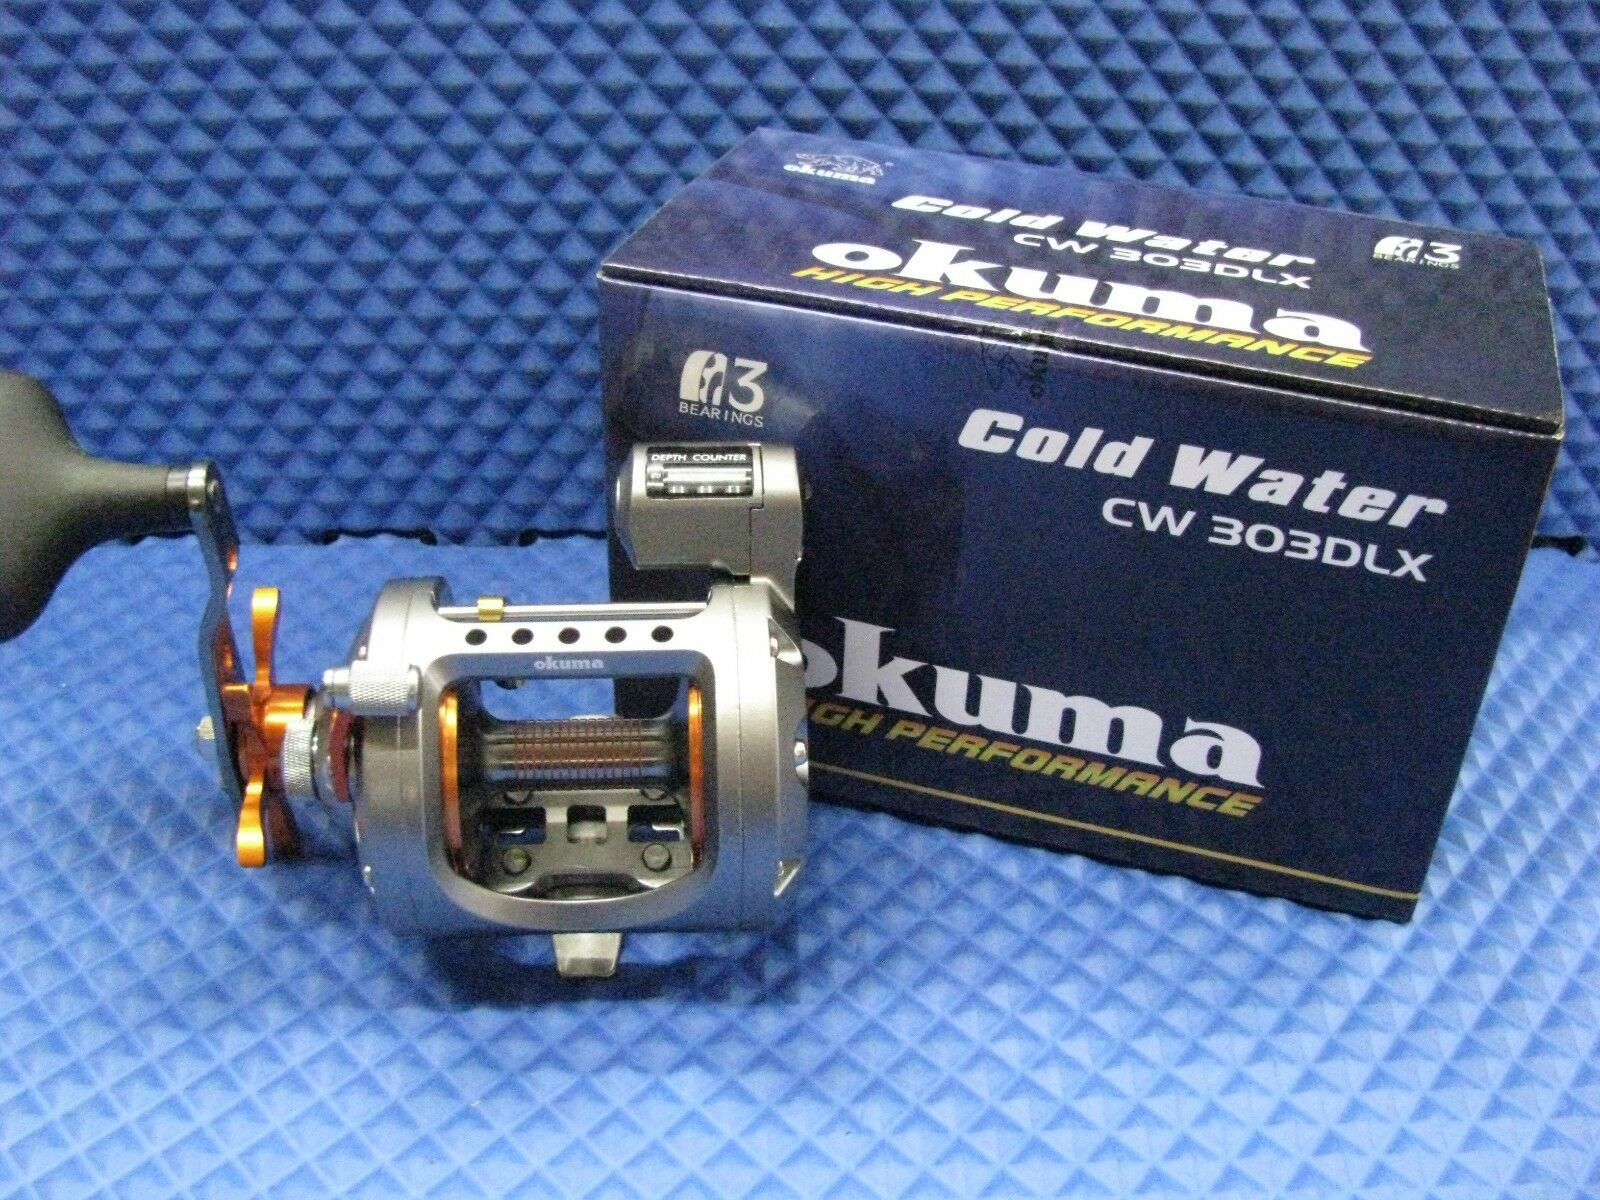 Okuma Cold Water Left Hand CW Trolling Reel with Line Counter CW Hand 303DLX b510cd